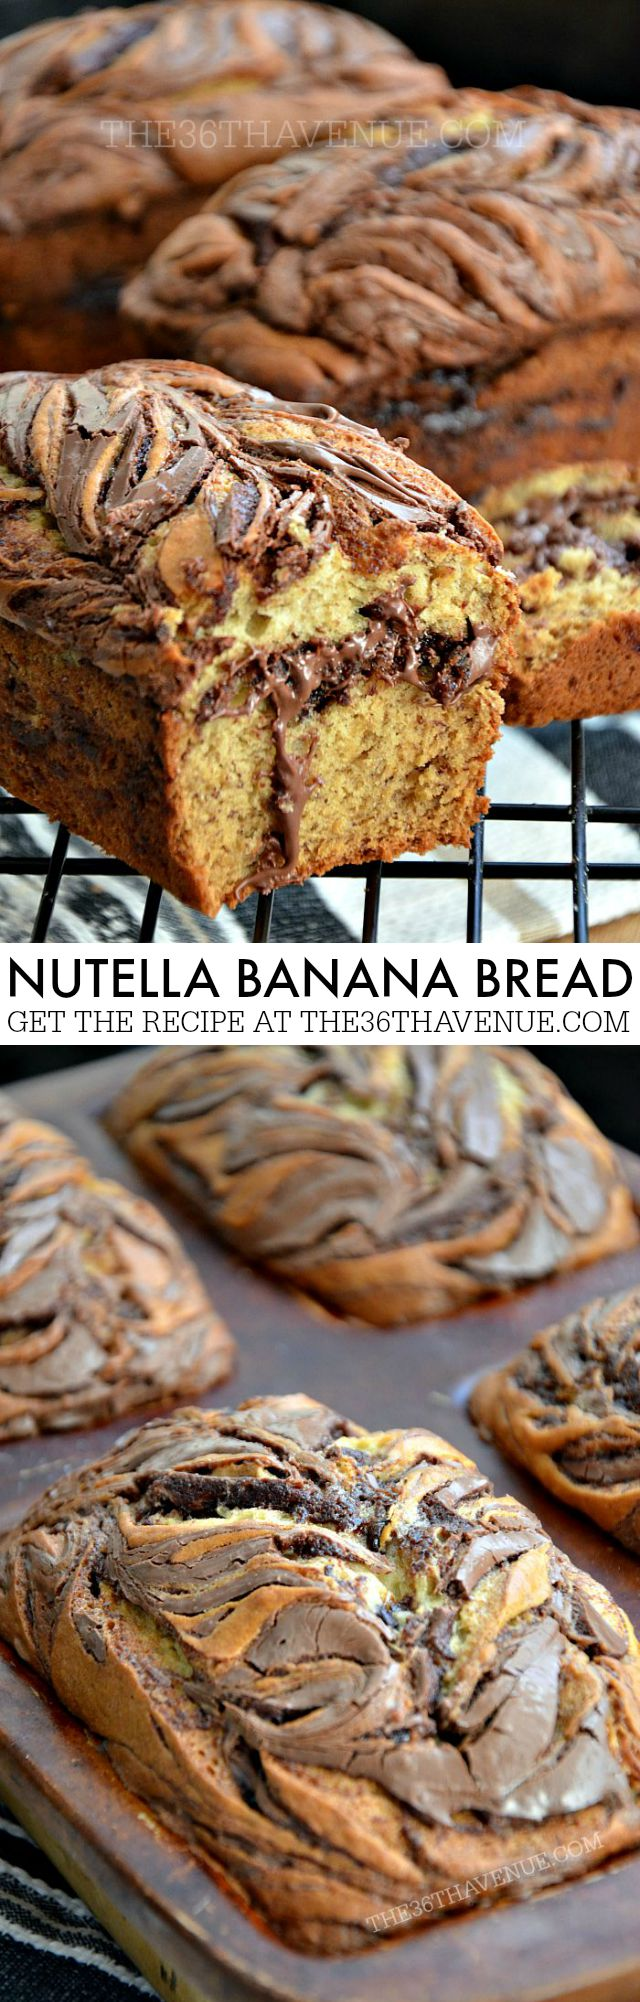 Nutella Banana Bread Recipe 800 by the36thavenue.com